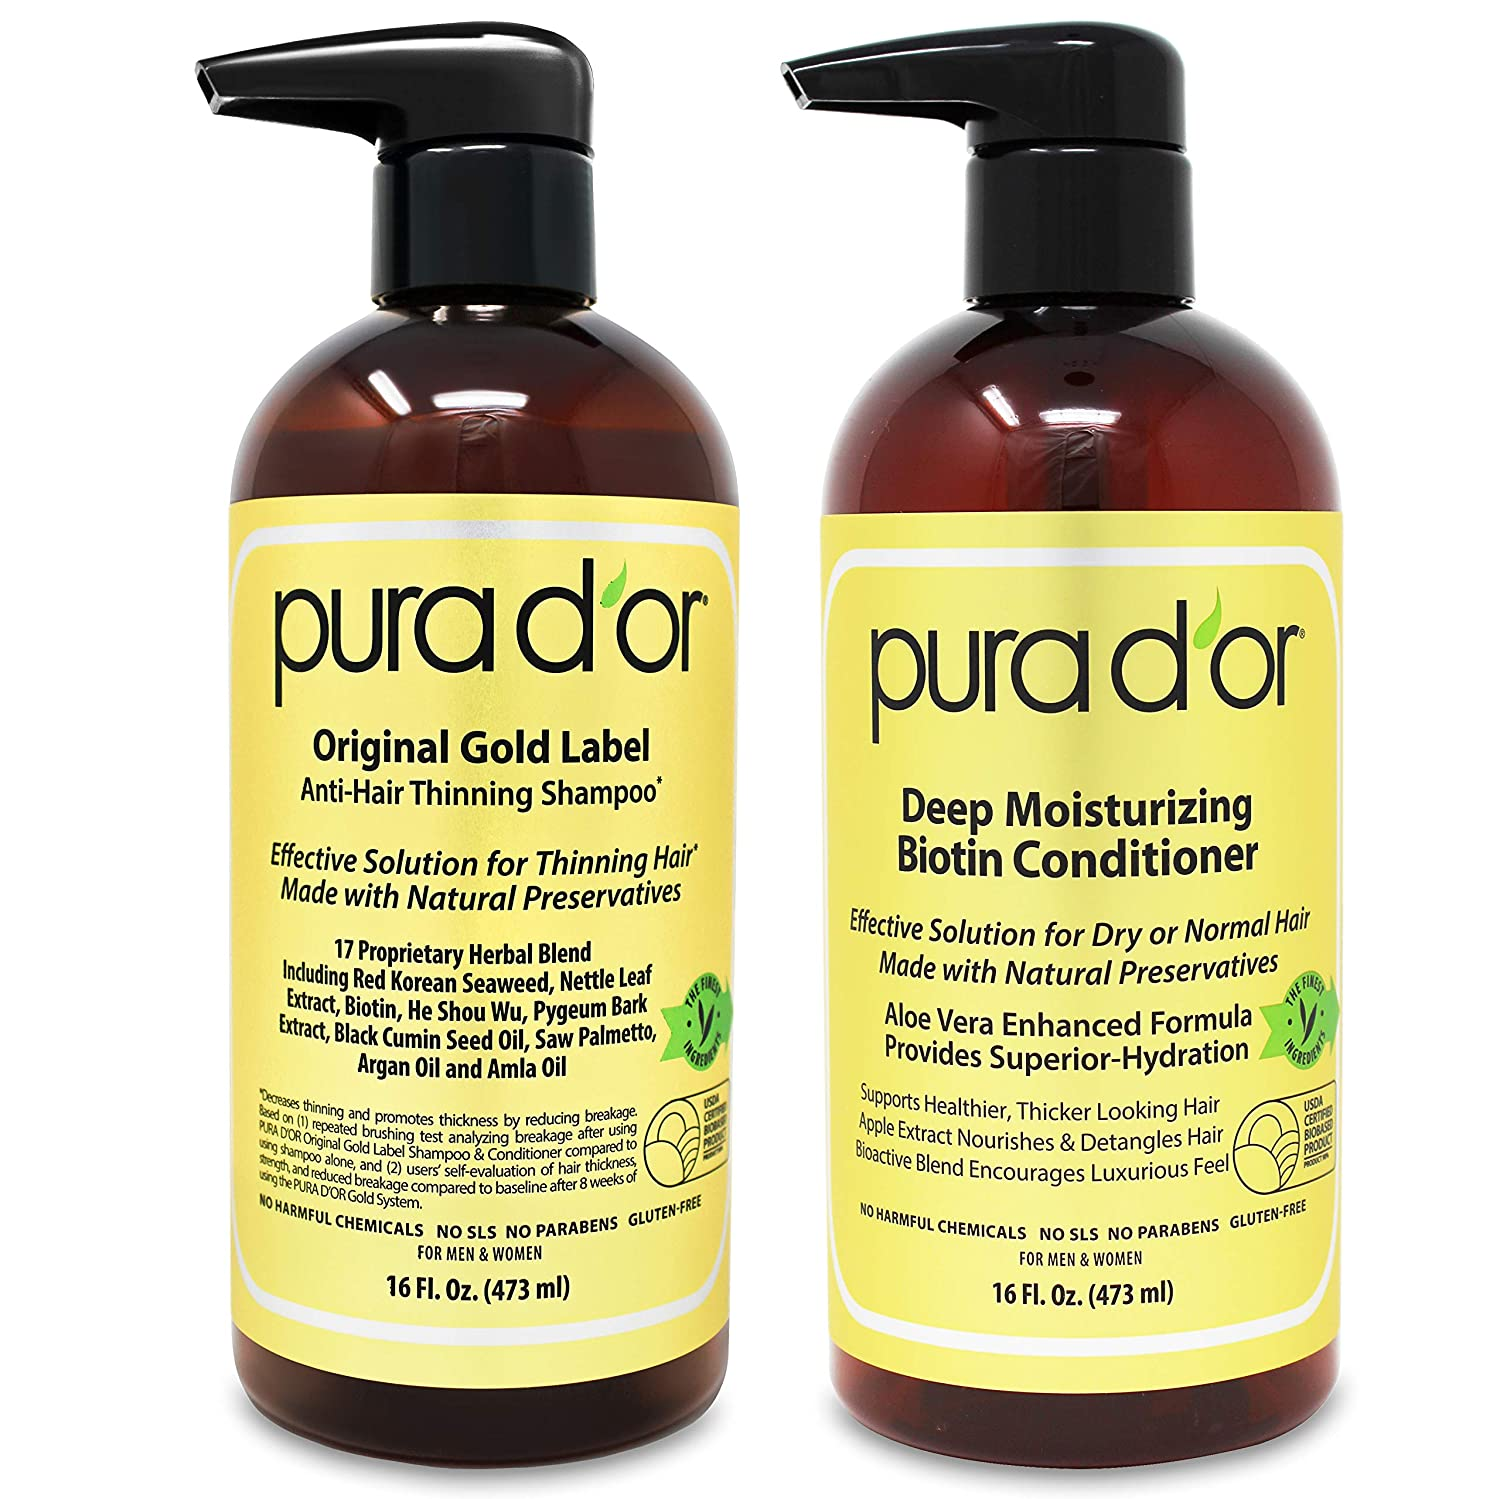 Two bottles of Pura d'Or Anti-hair thinning shampoo and deep moisturizing biotin conditioner, men's hair products